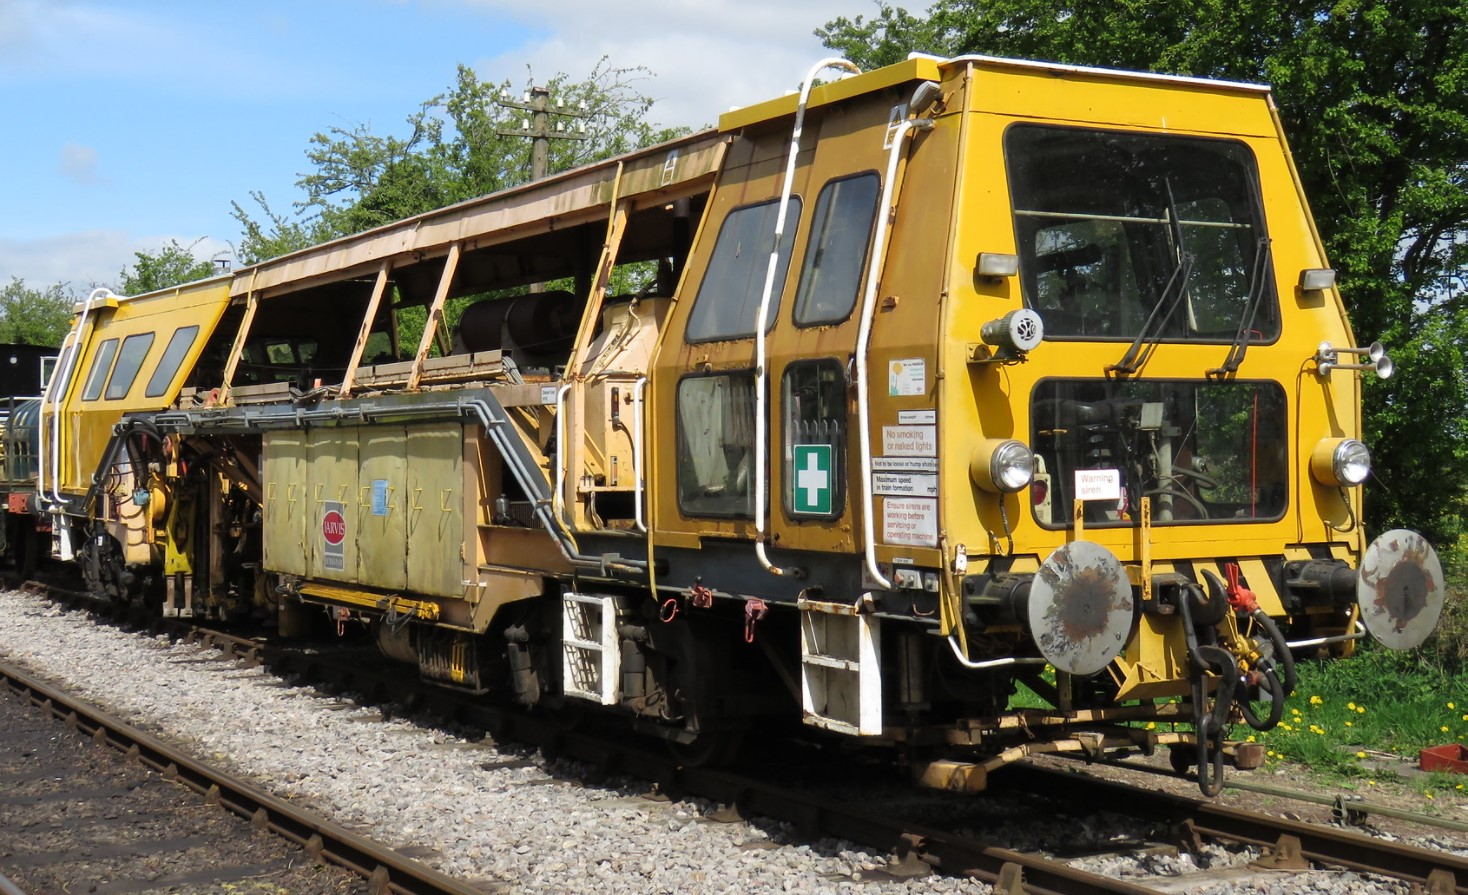 DR73216 at the Swindon & Cricklade Railway in April 2017. ©Foulger Railway Photography